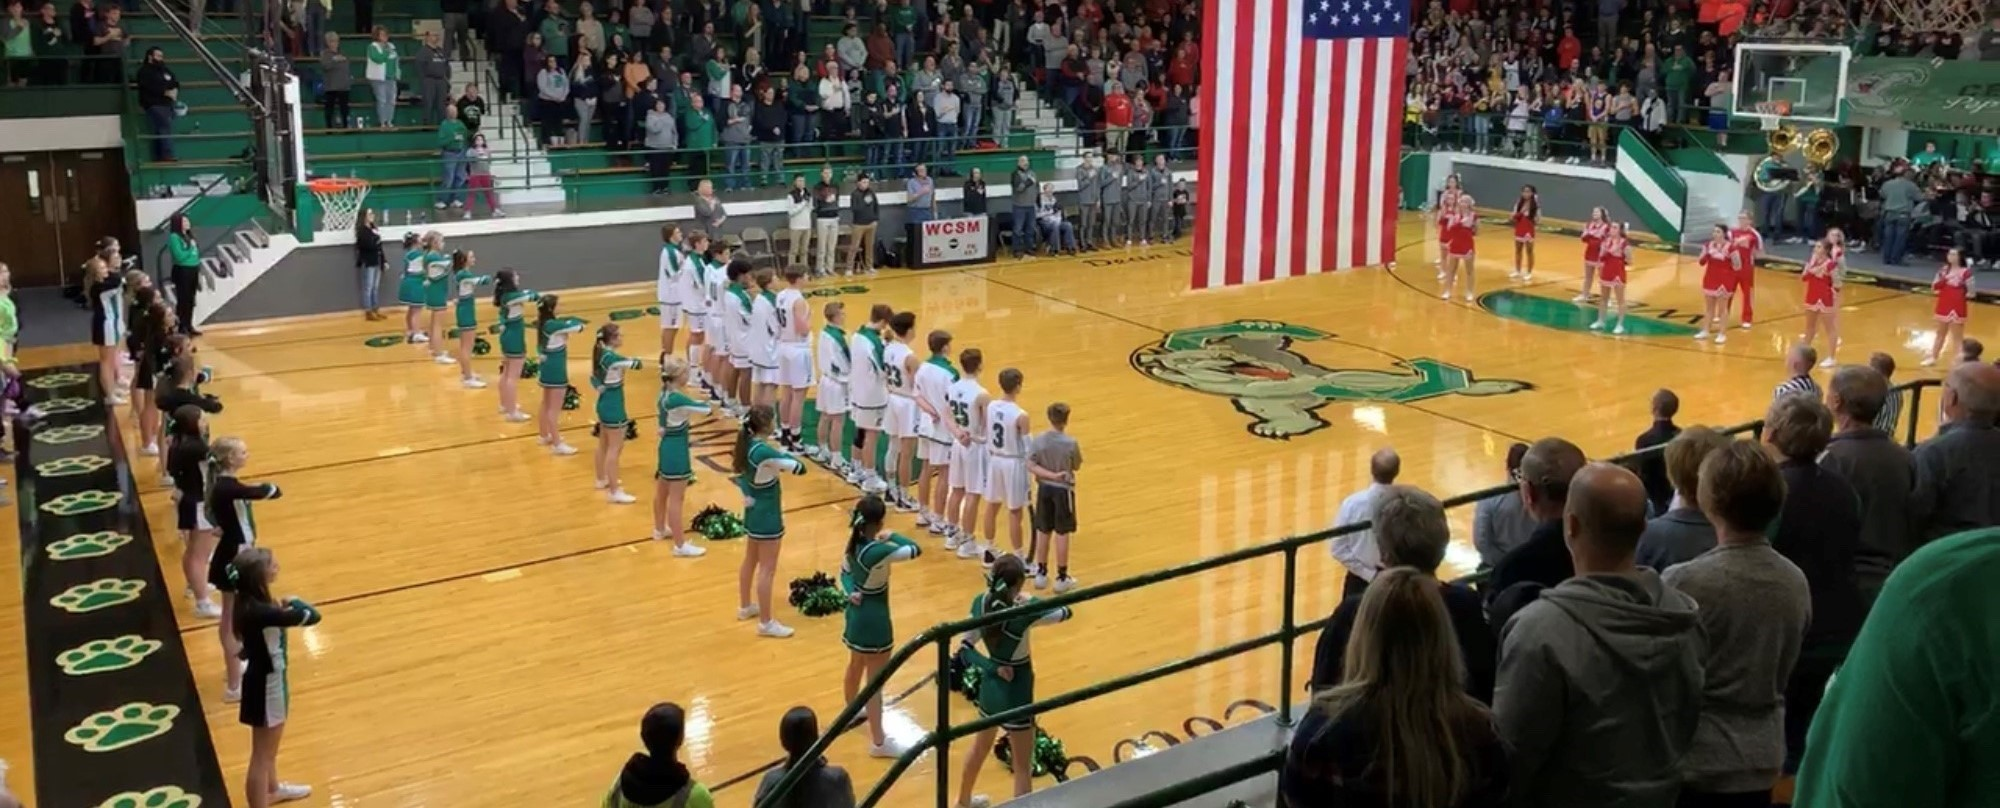 Basketball Game, Star Spangled Banner